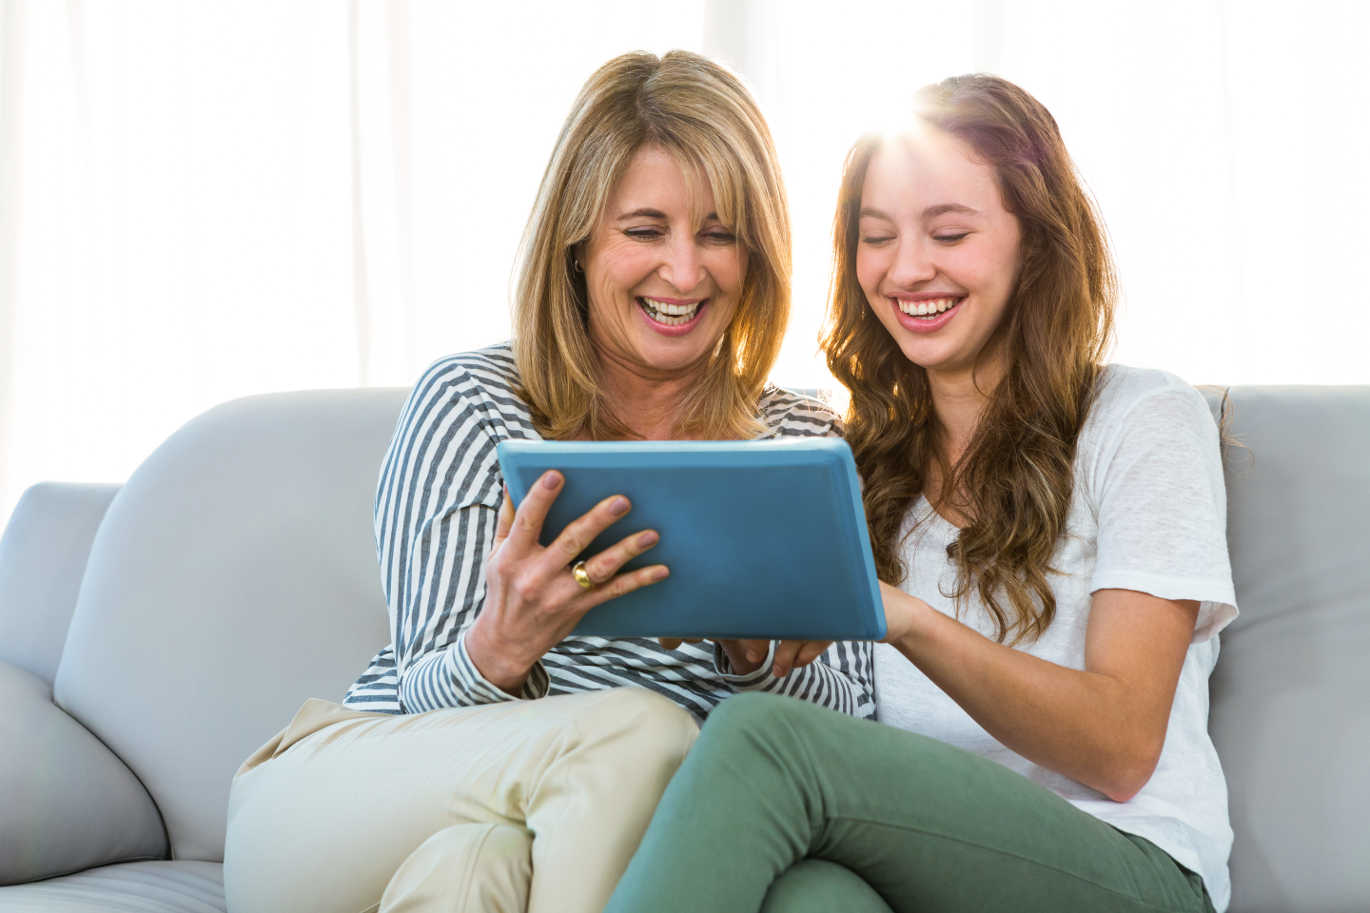 mother and daughter looking at ipad